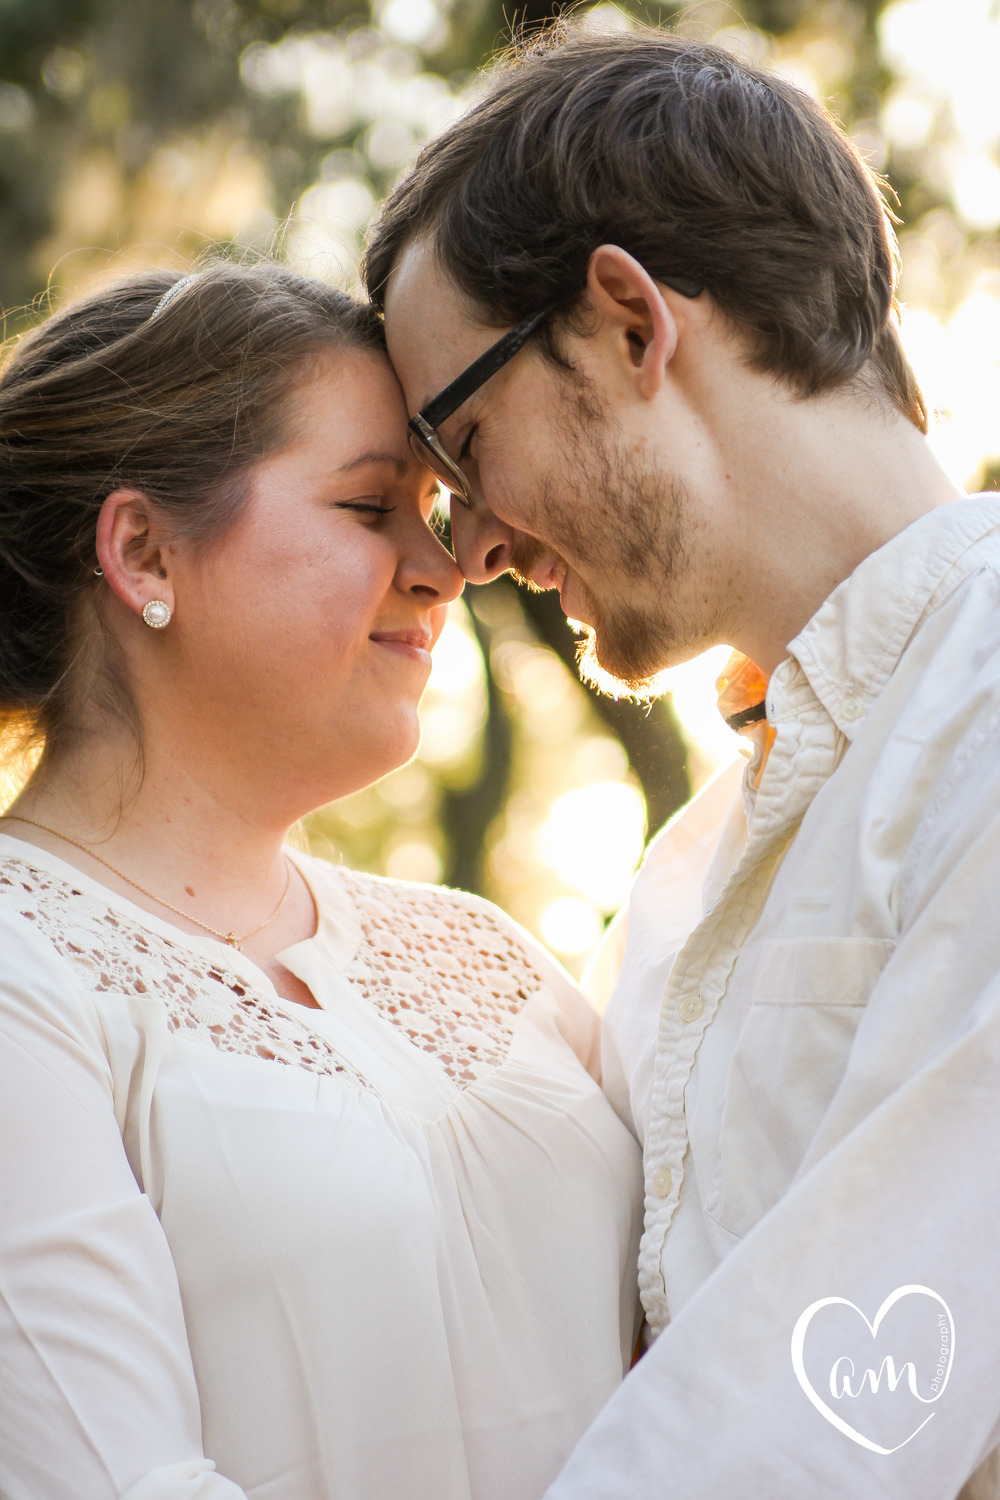 romantic engagement photography in orlando florida